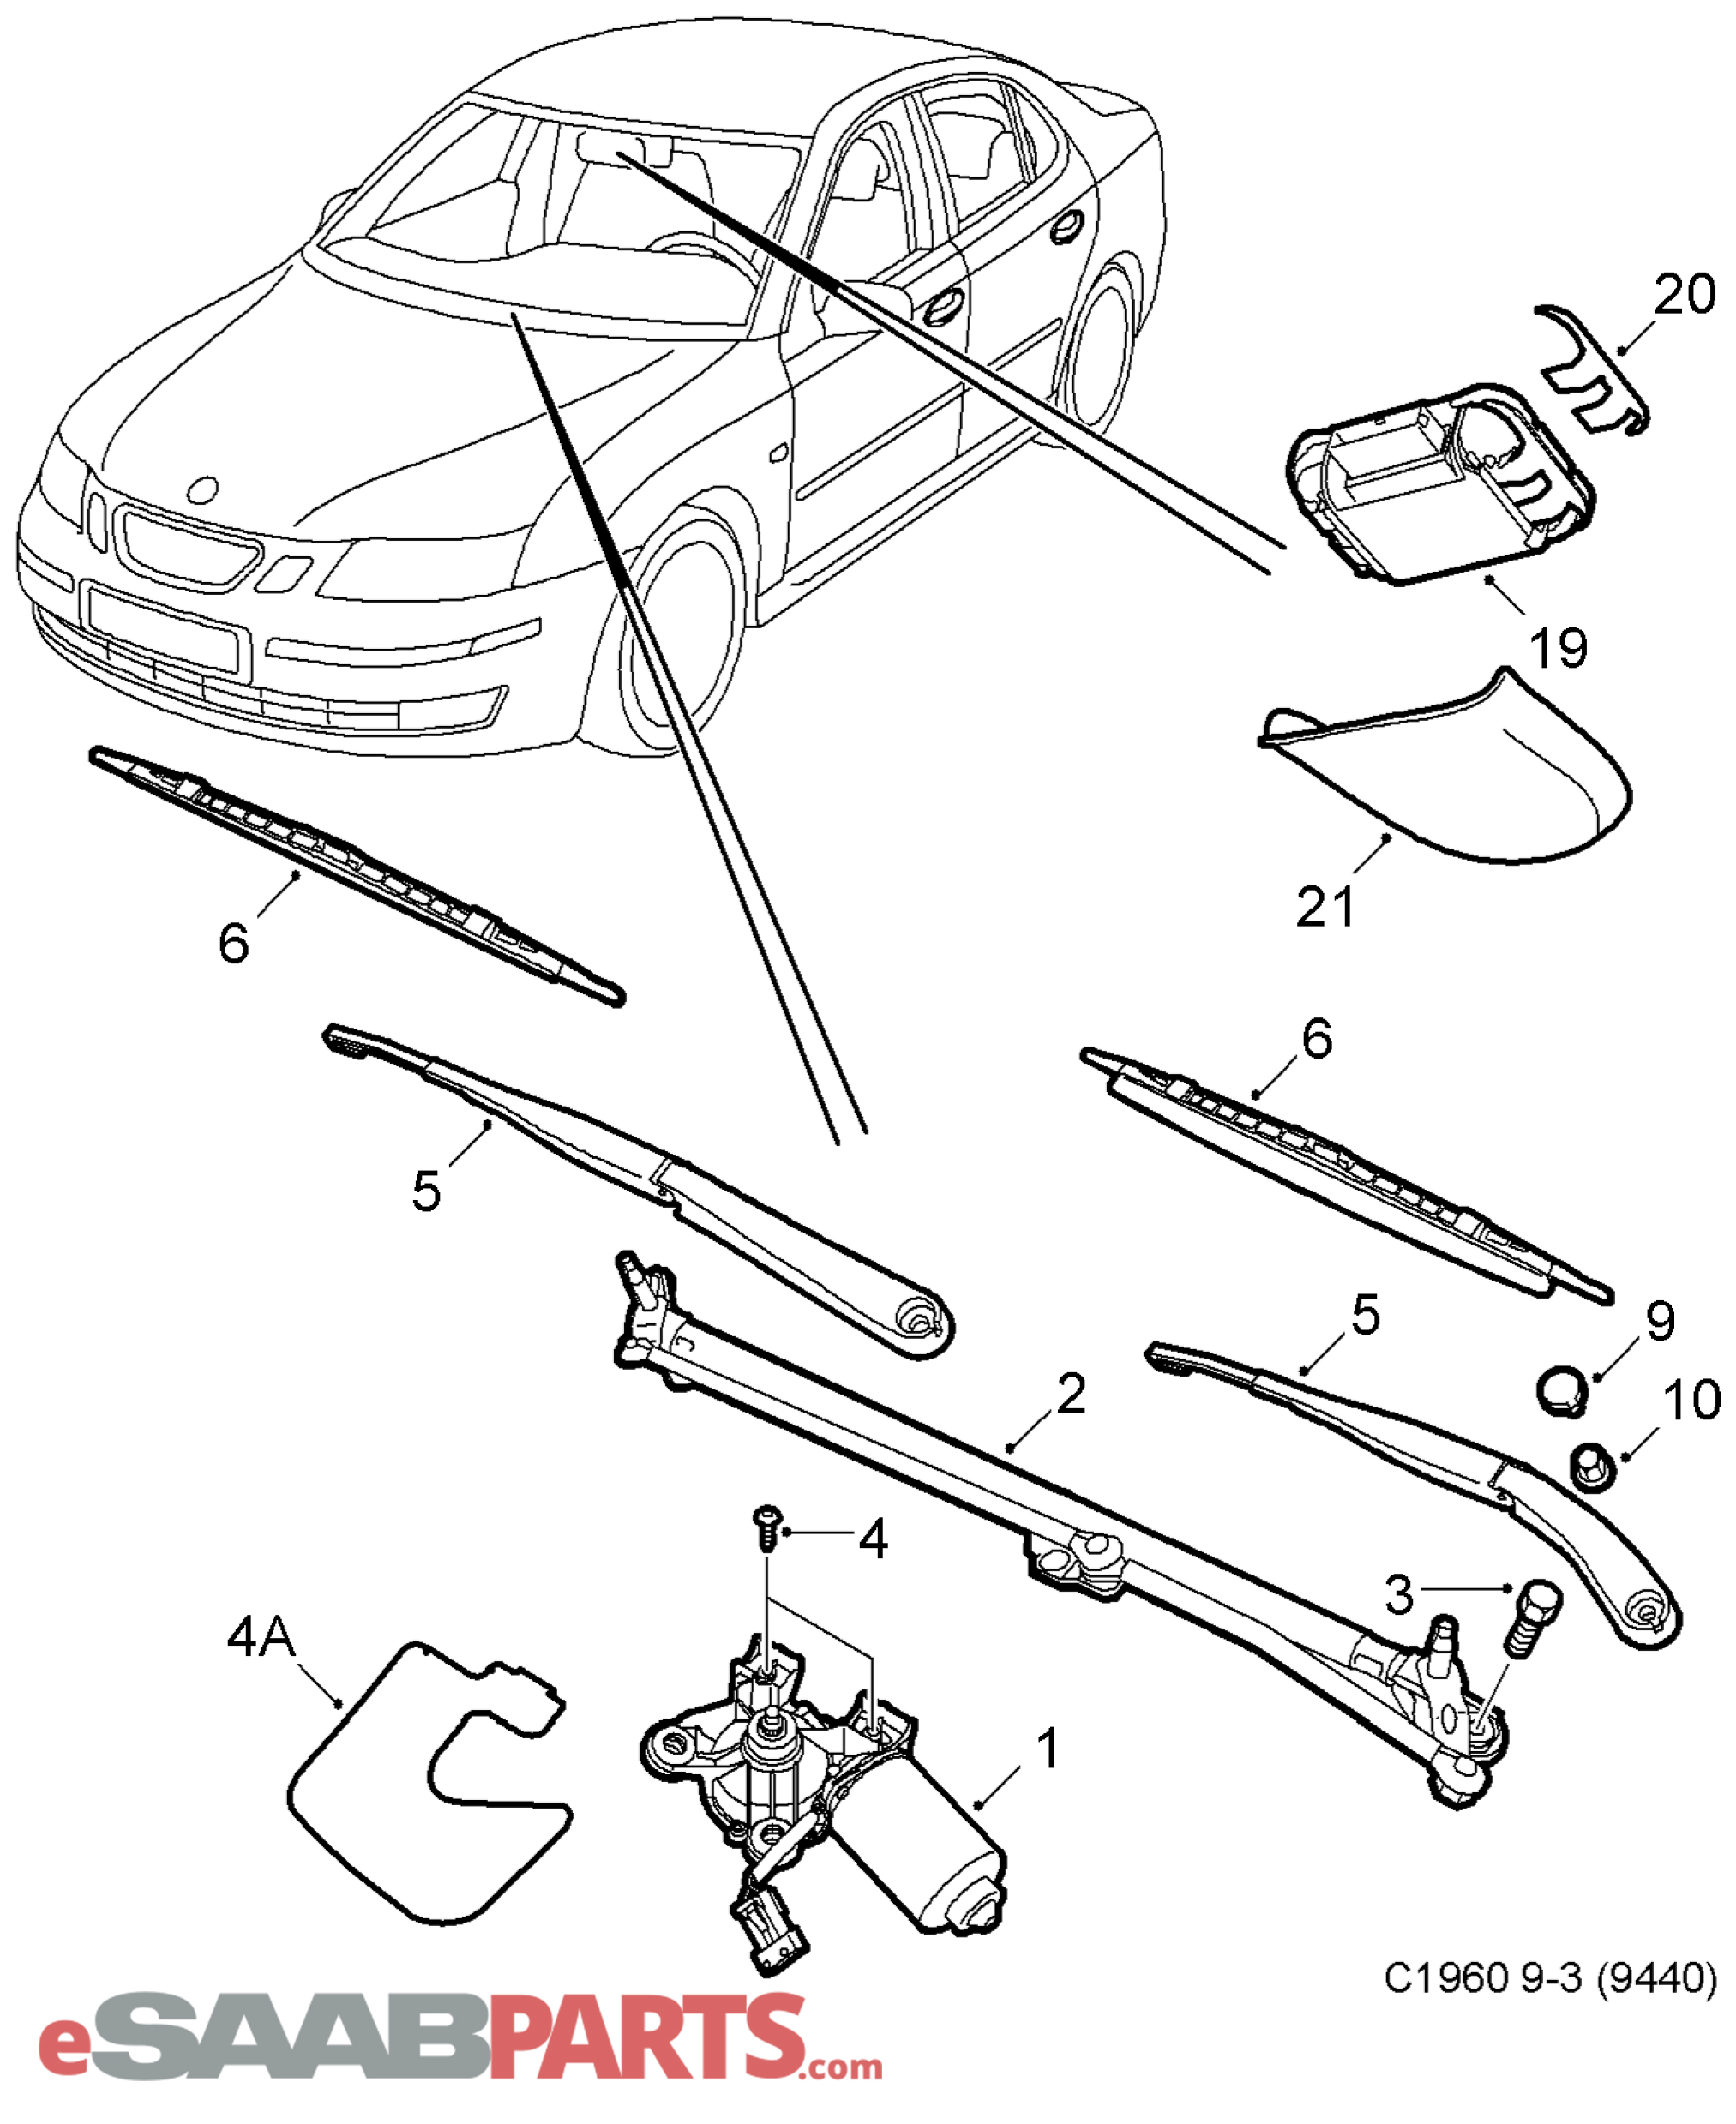 Windshield wiper chassis 4d 5104